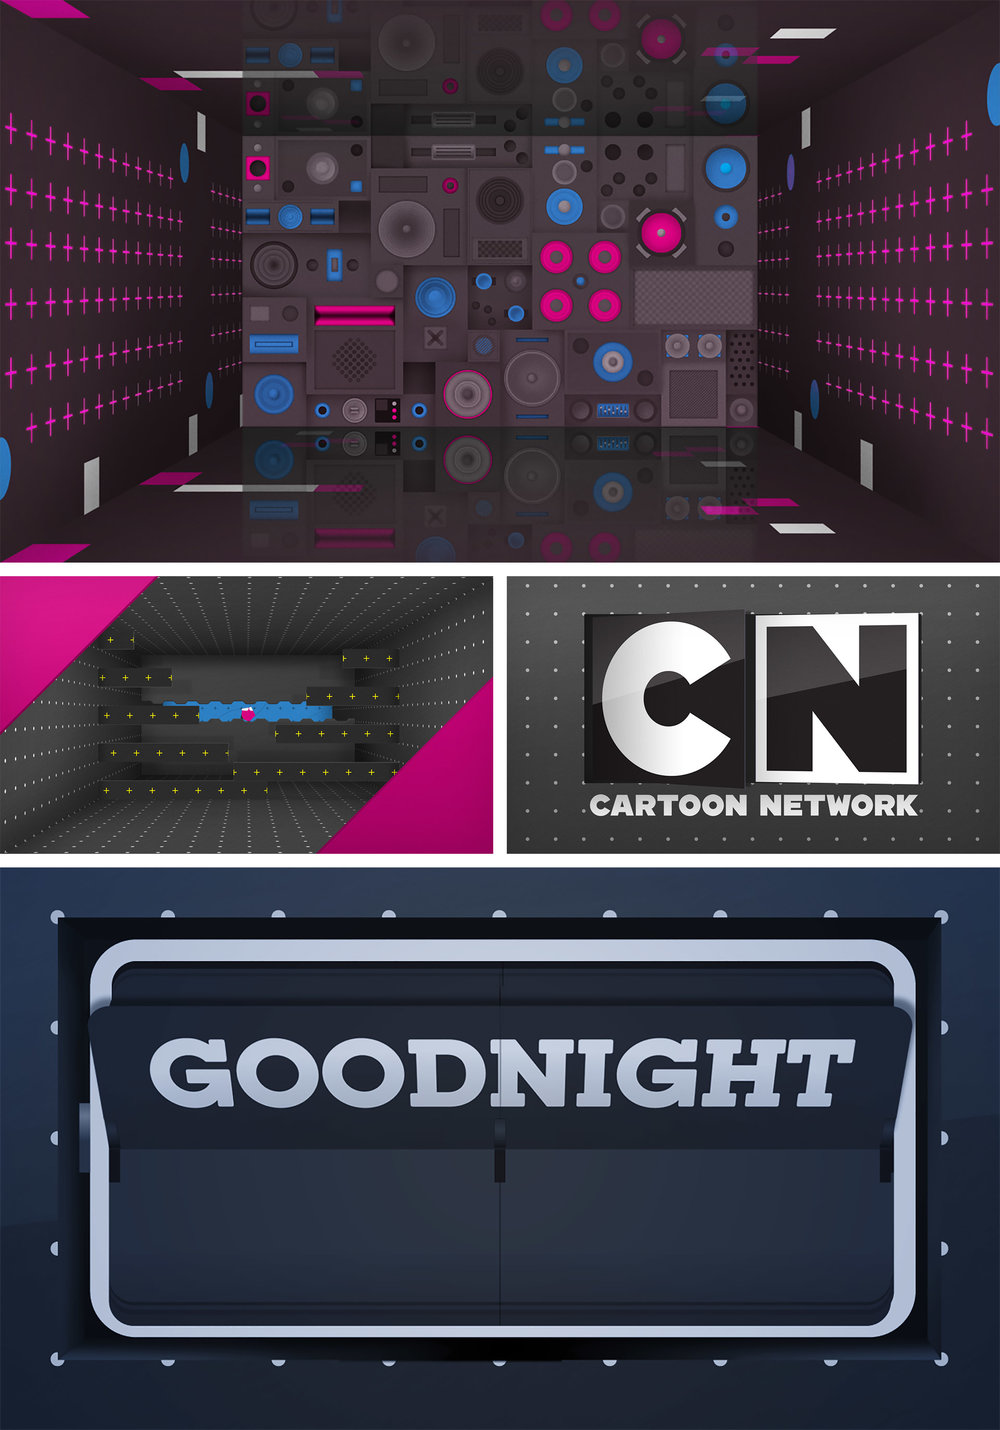 cartoon_network_rebrand_boards_04.jpg